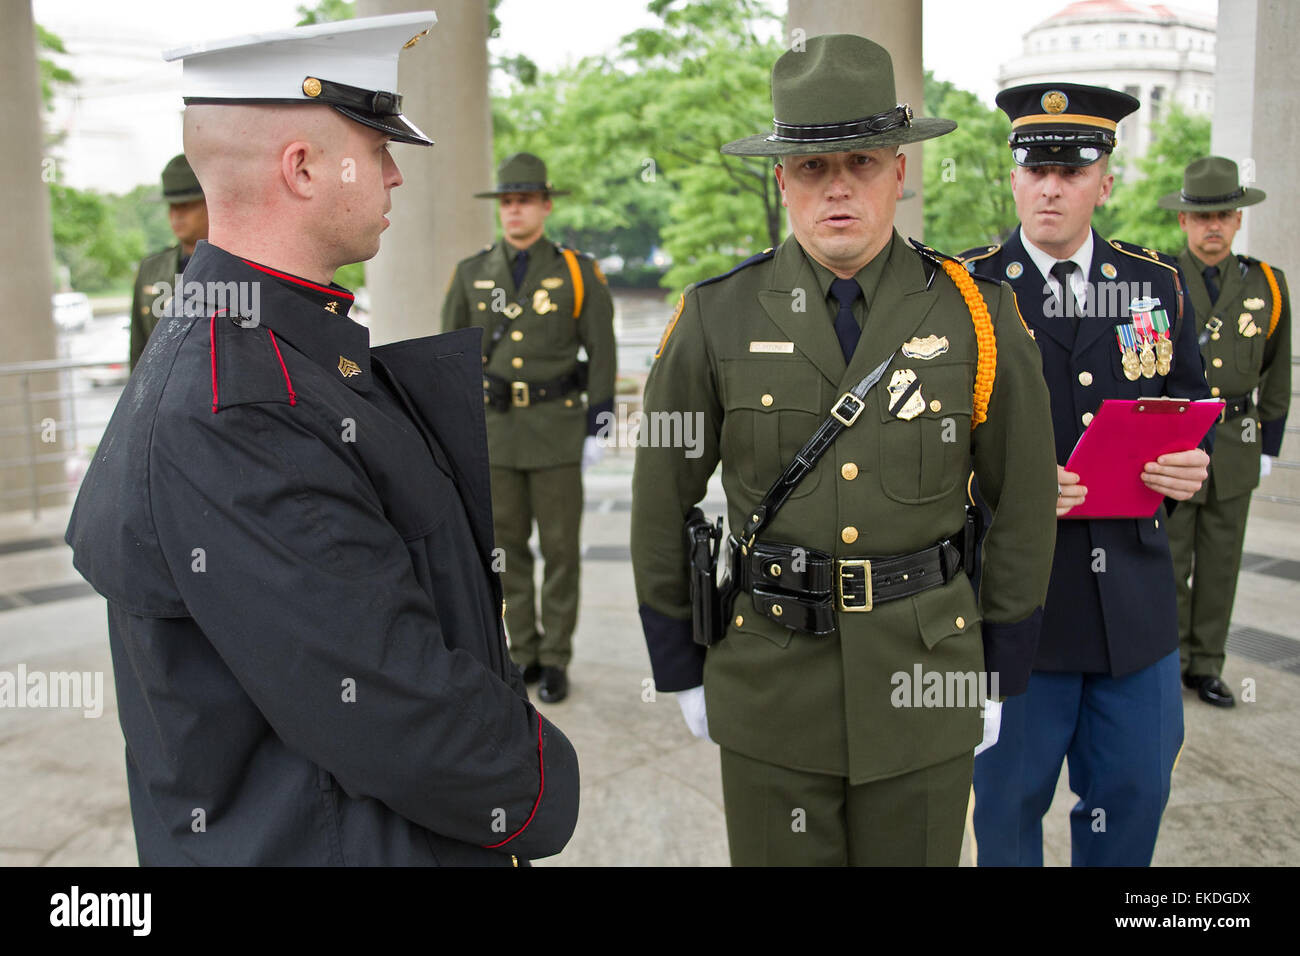 Ranks In Marine >> 051212: Washington D.C. - A member of the United States Border Patrol Stock Photo: 80818246 - Alamy